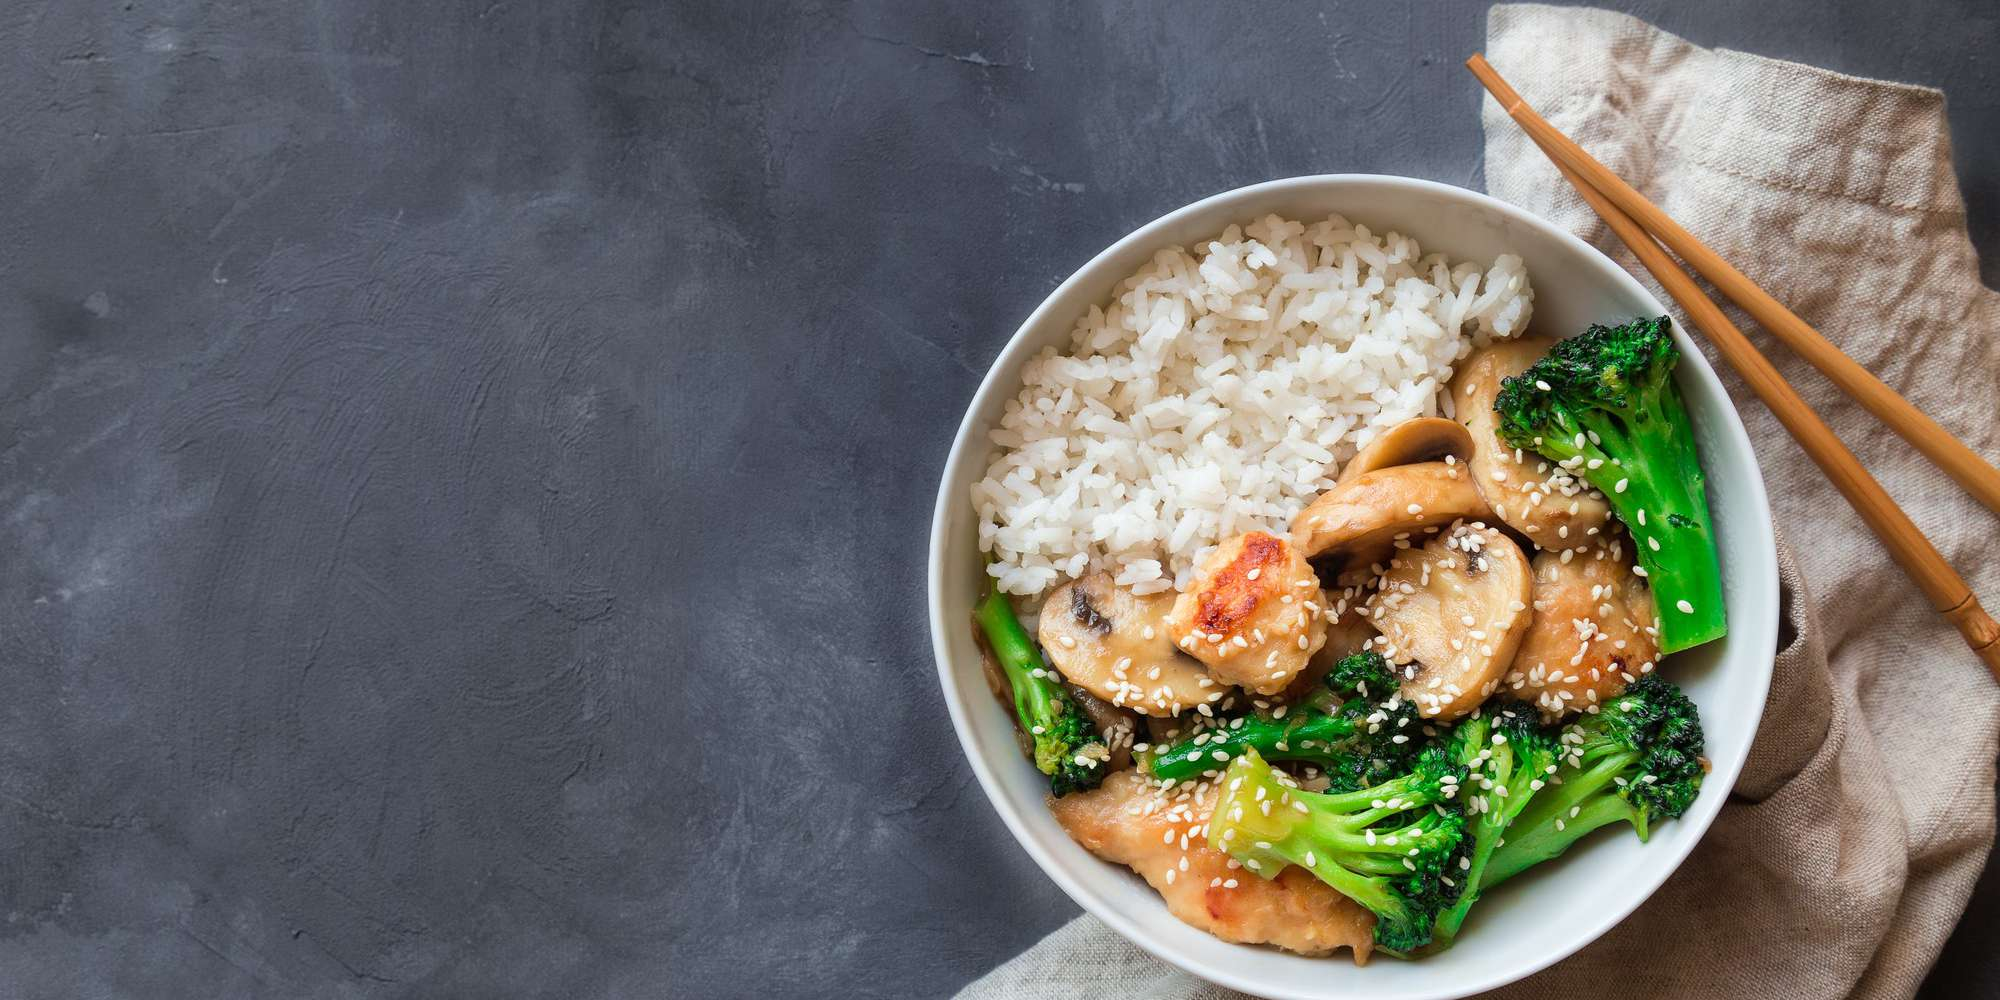 Sweet & Sour Chicken with Steamed Broccoli